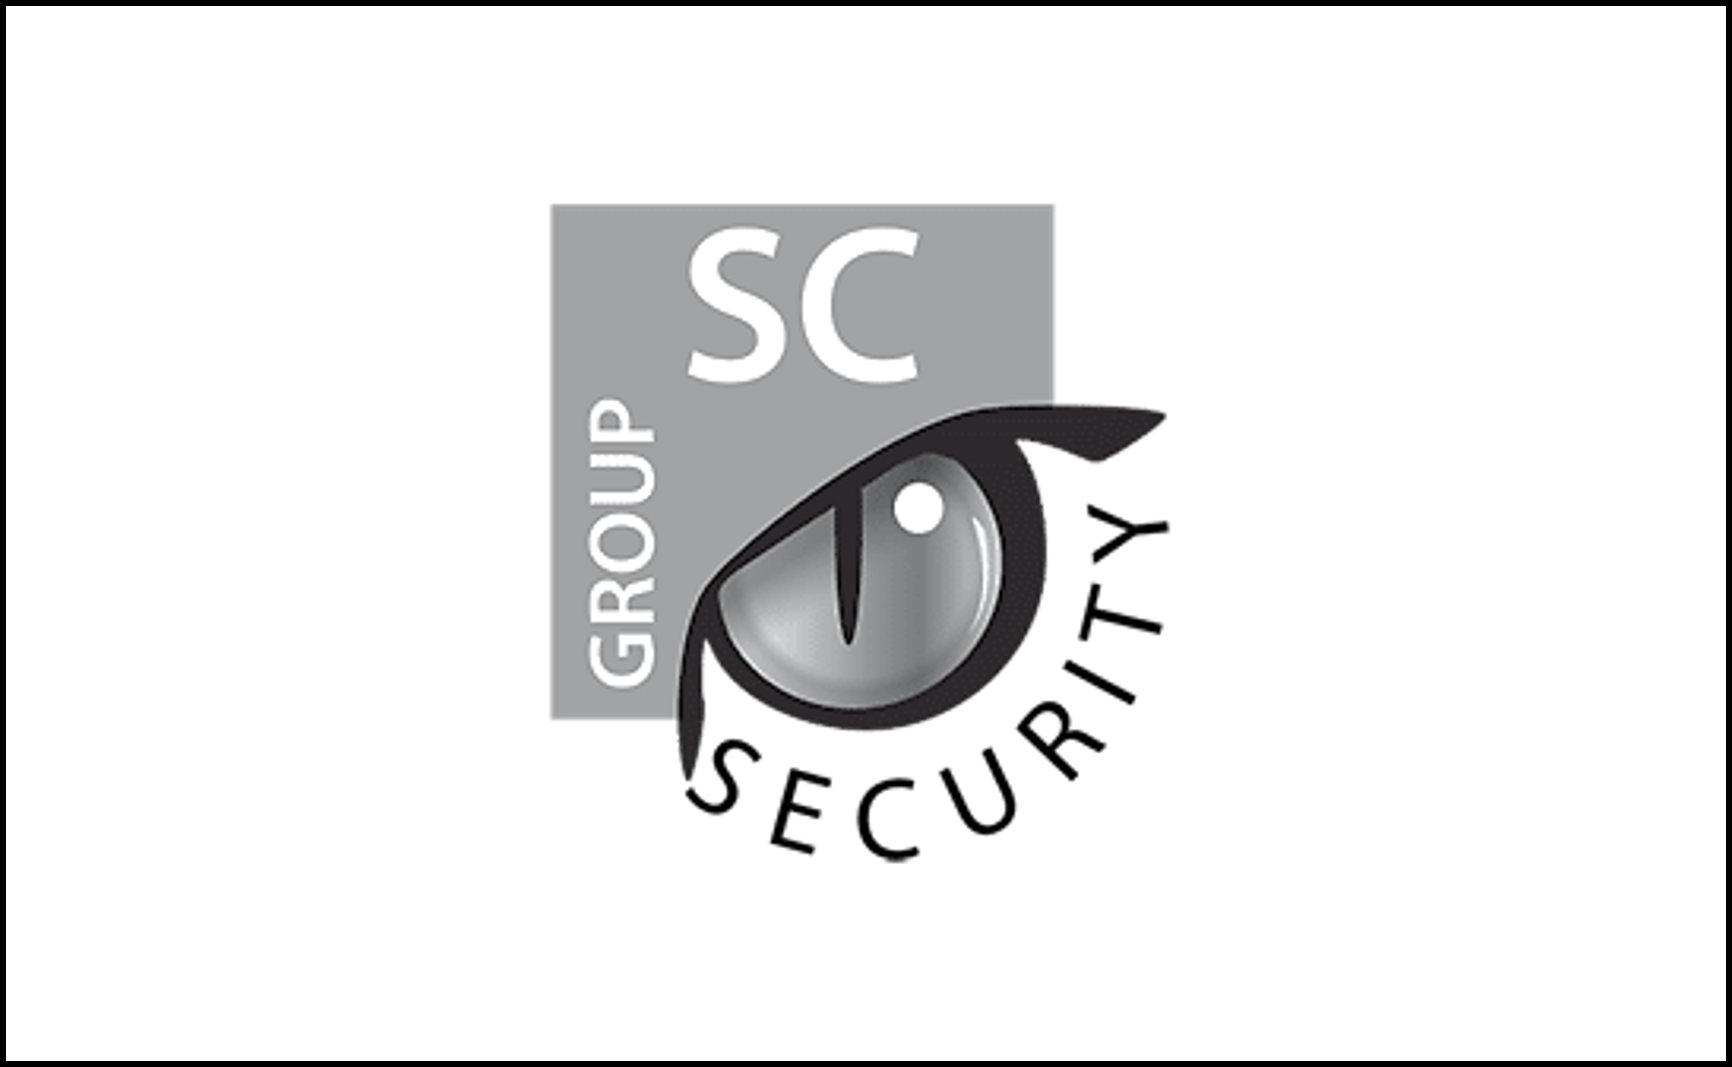 SC Security Group